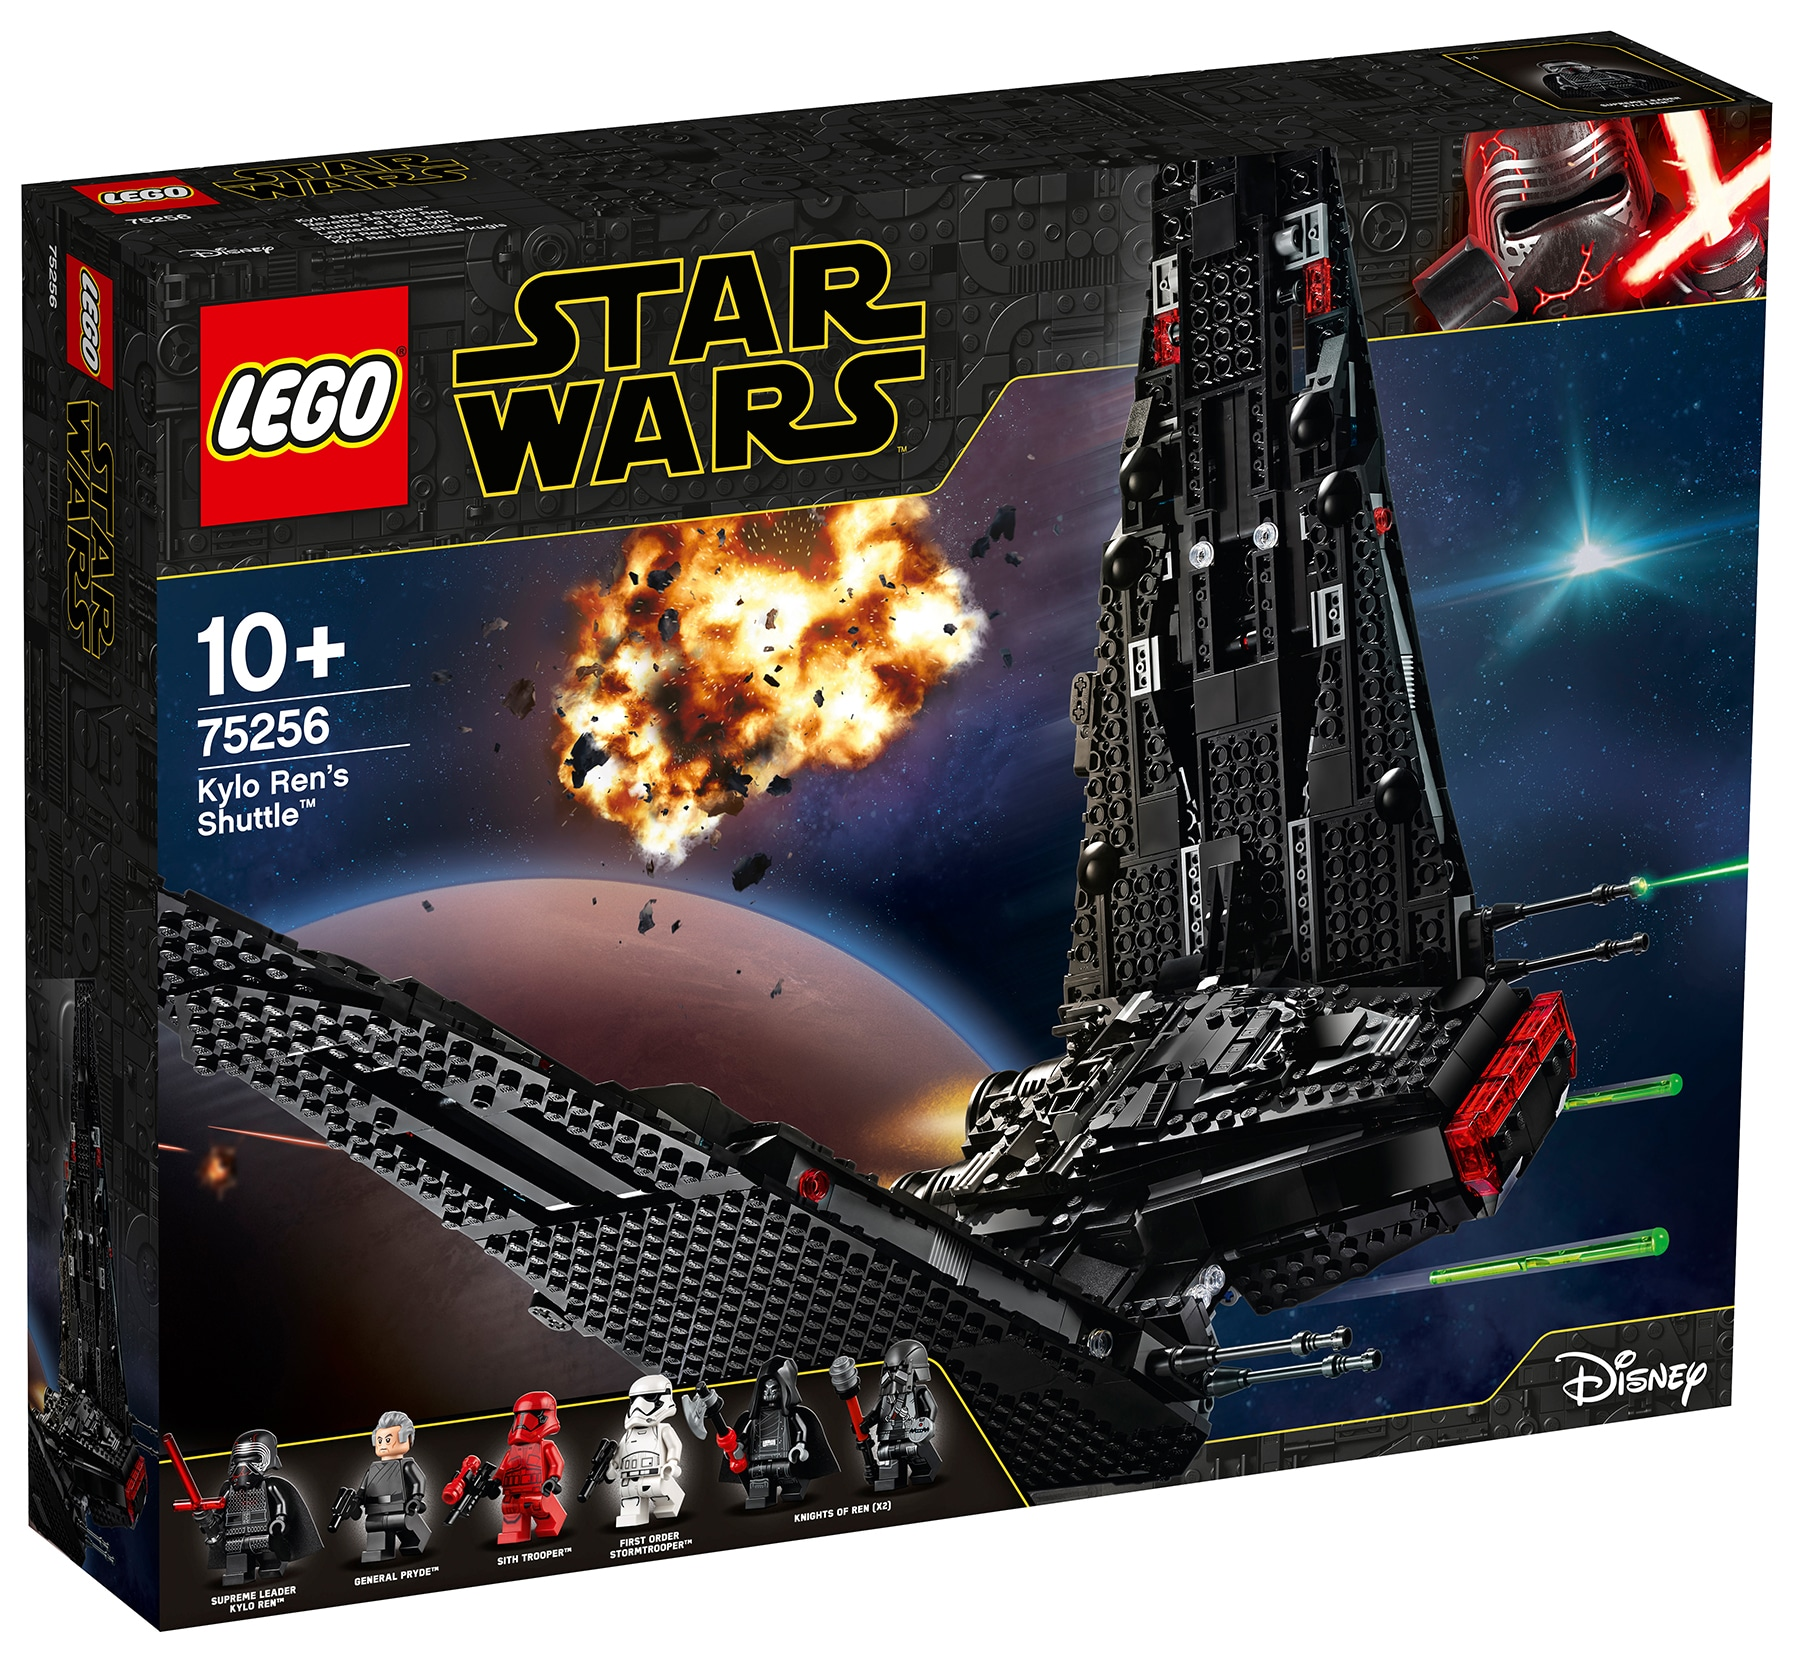 LEGO Star Wars 75256 Kylo Rens Shuttle